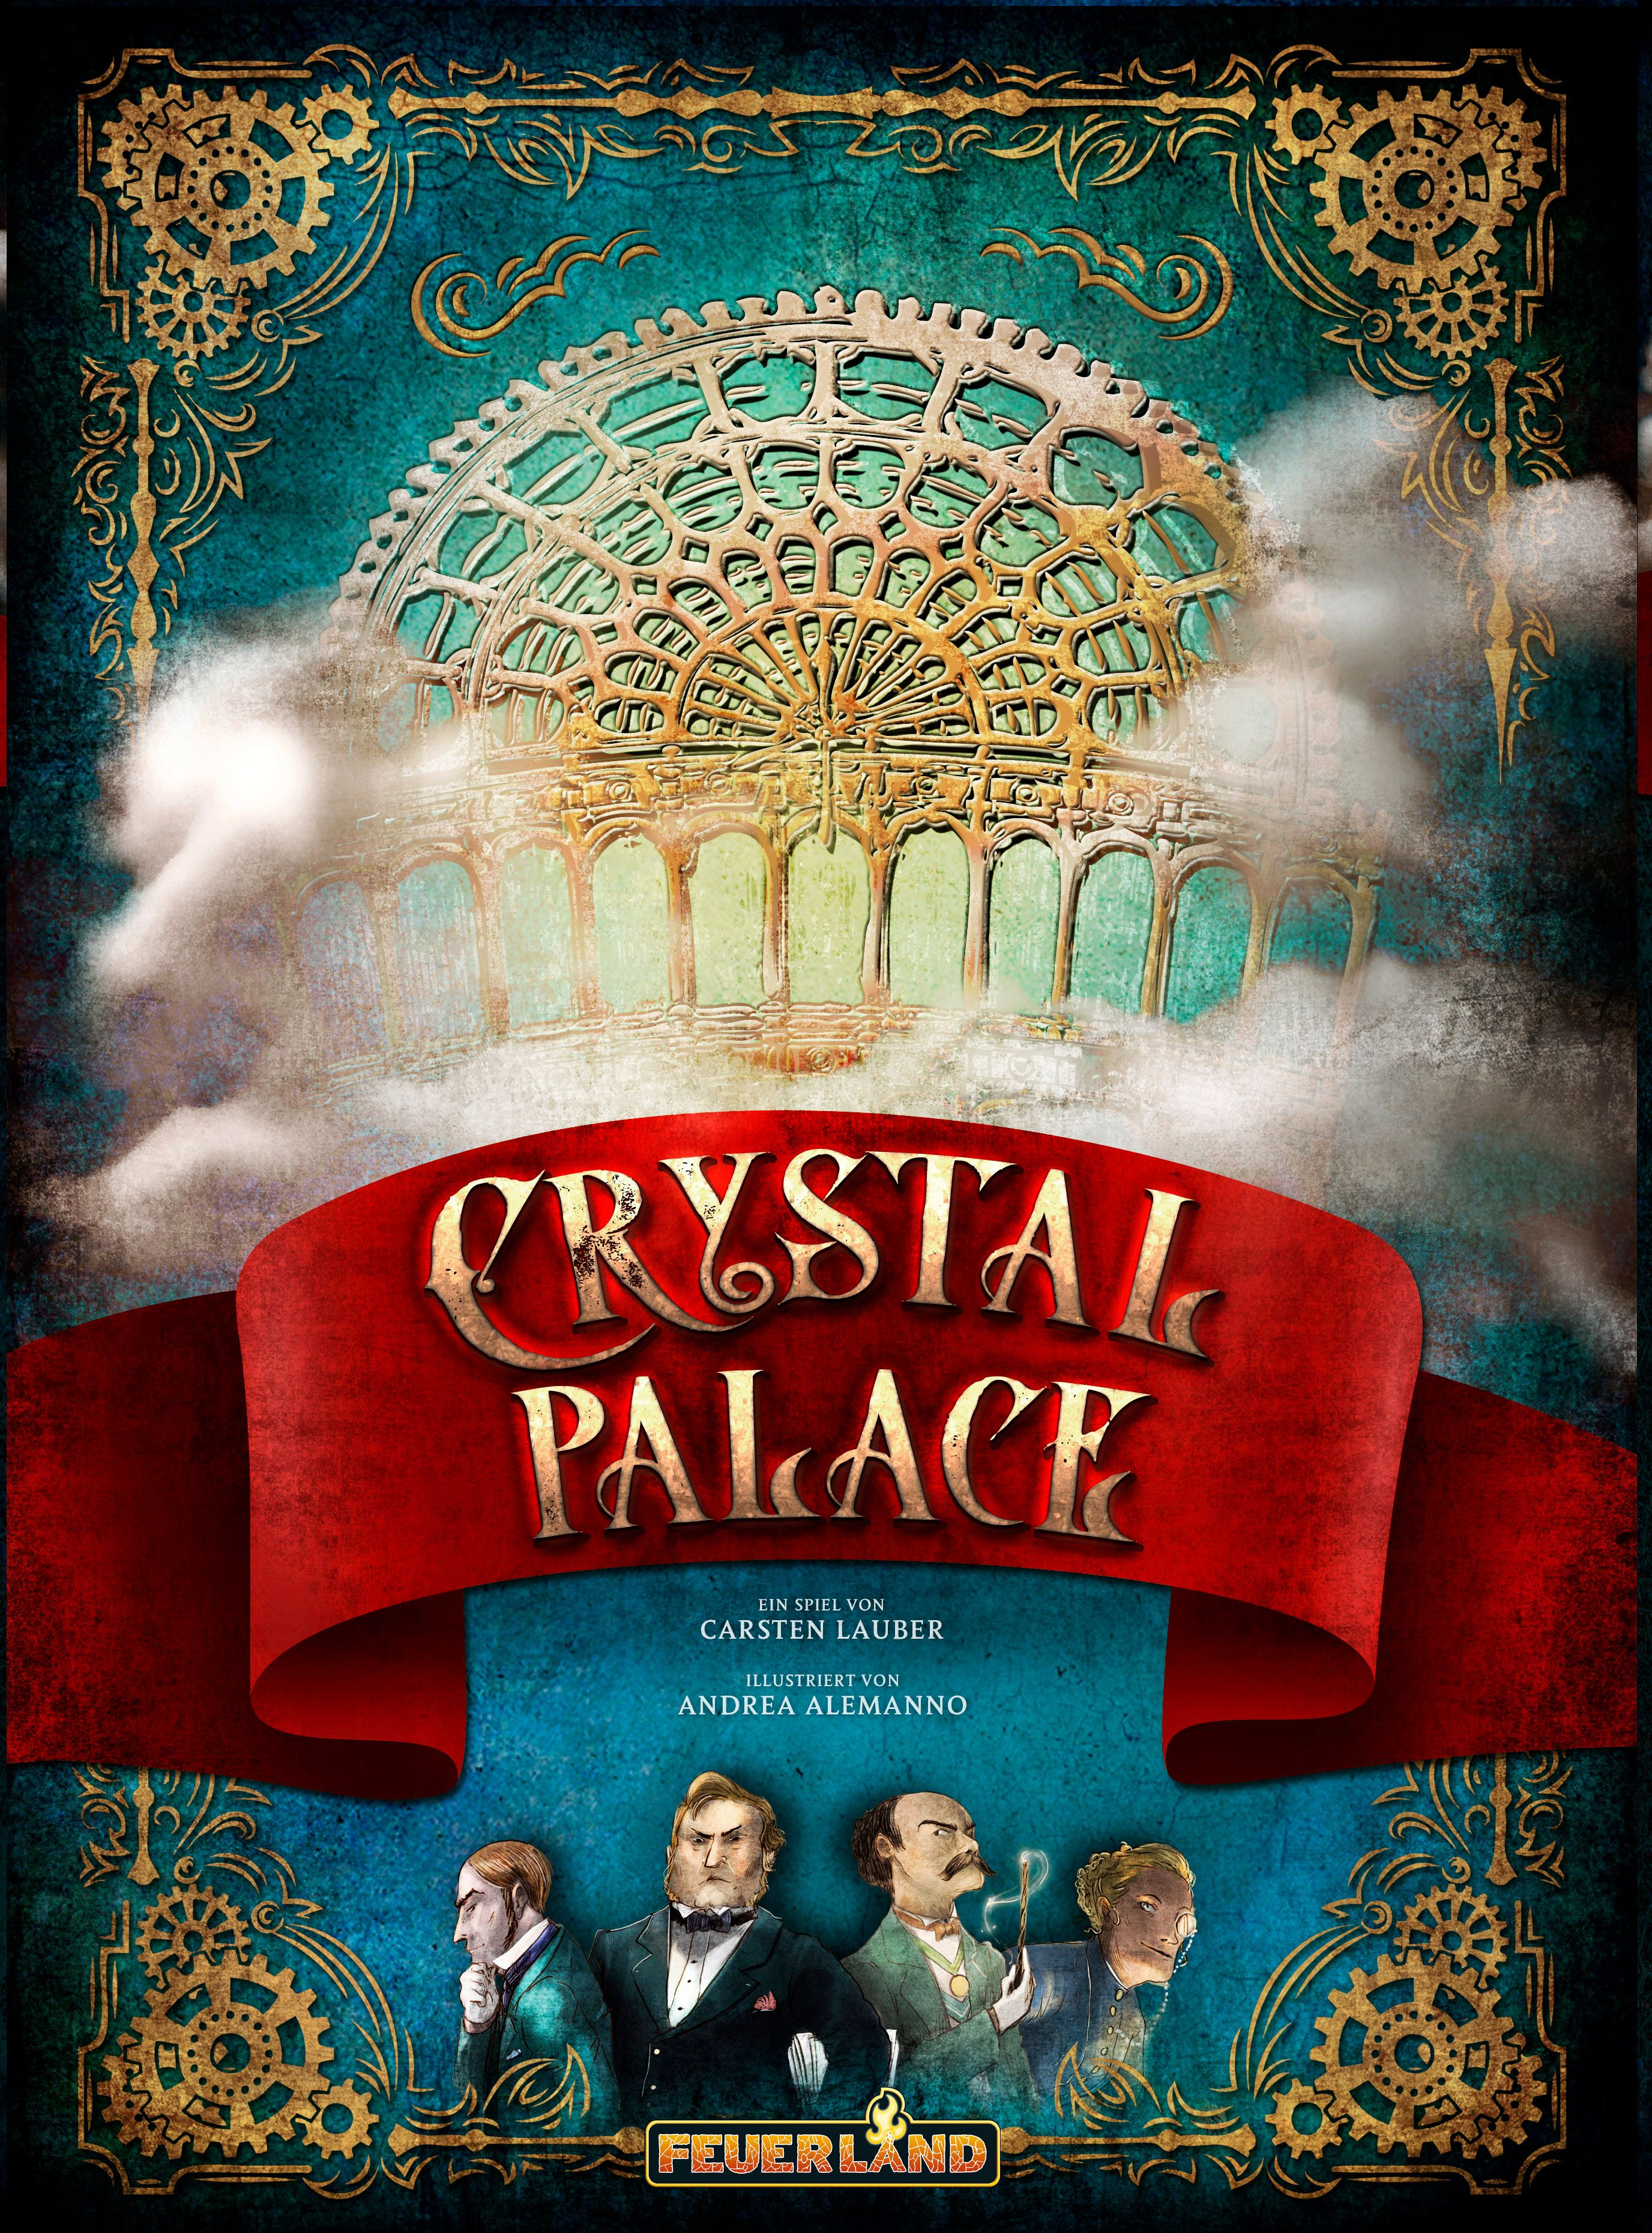 Crystal pallace